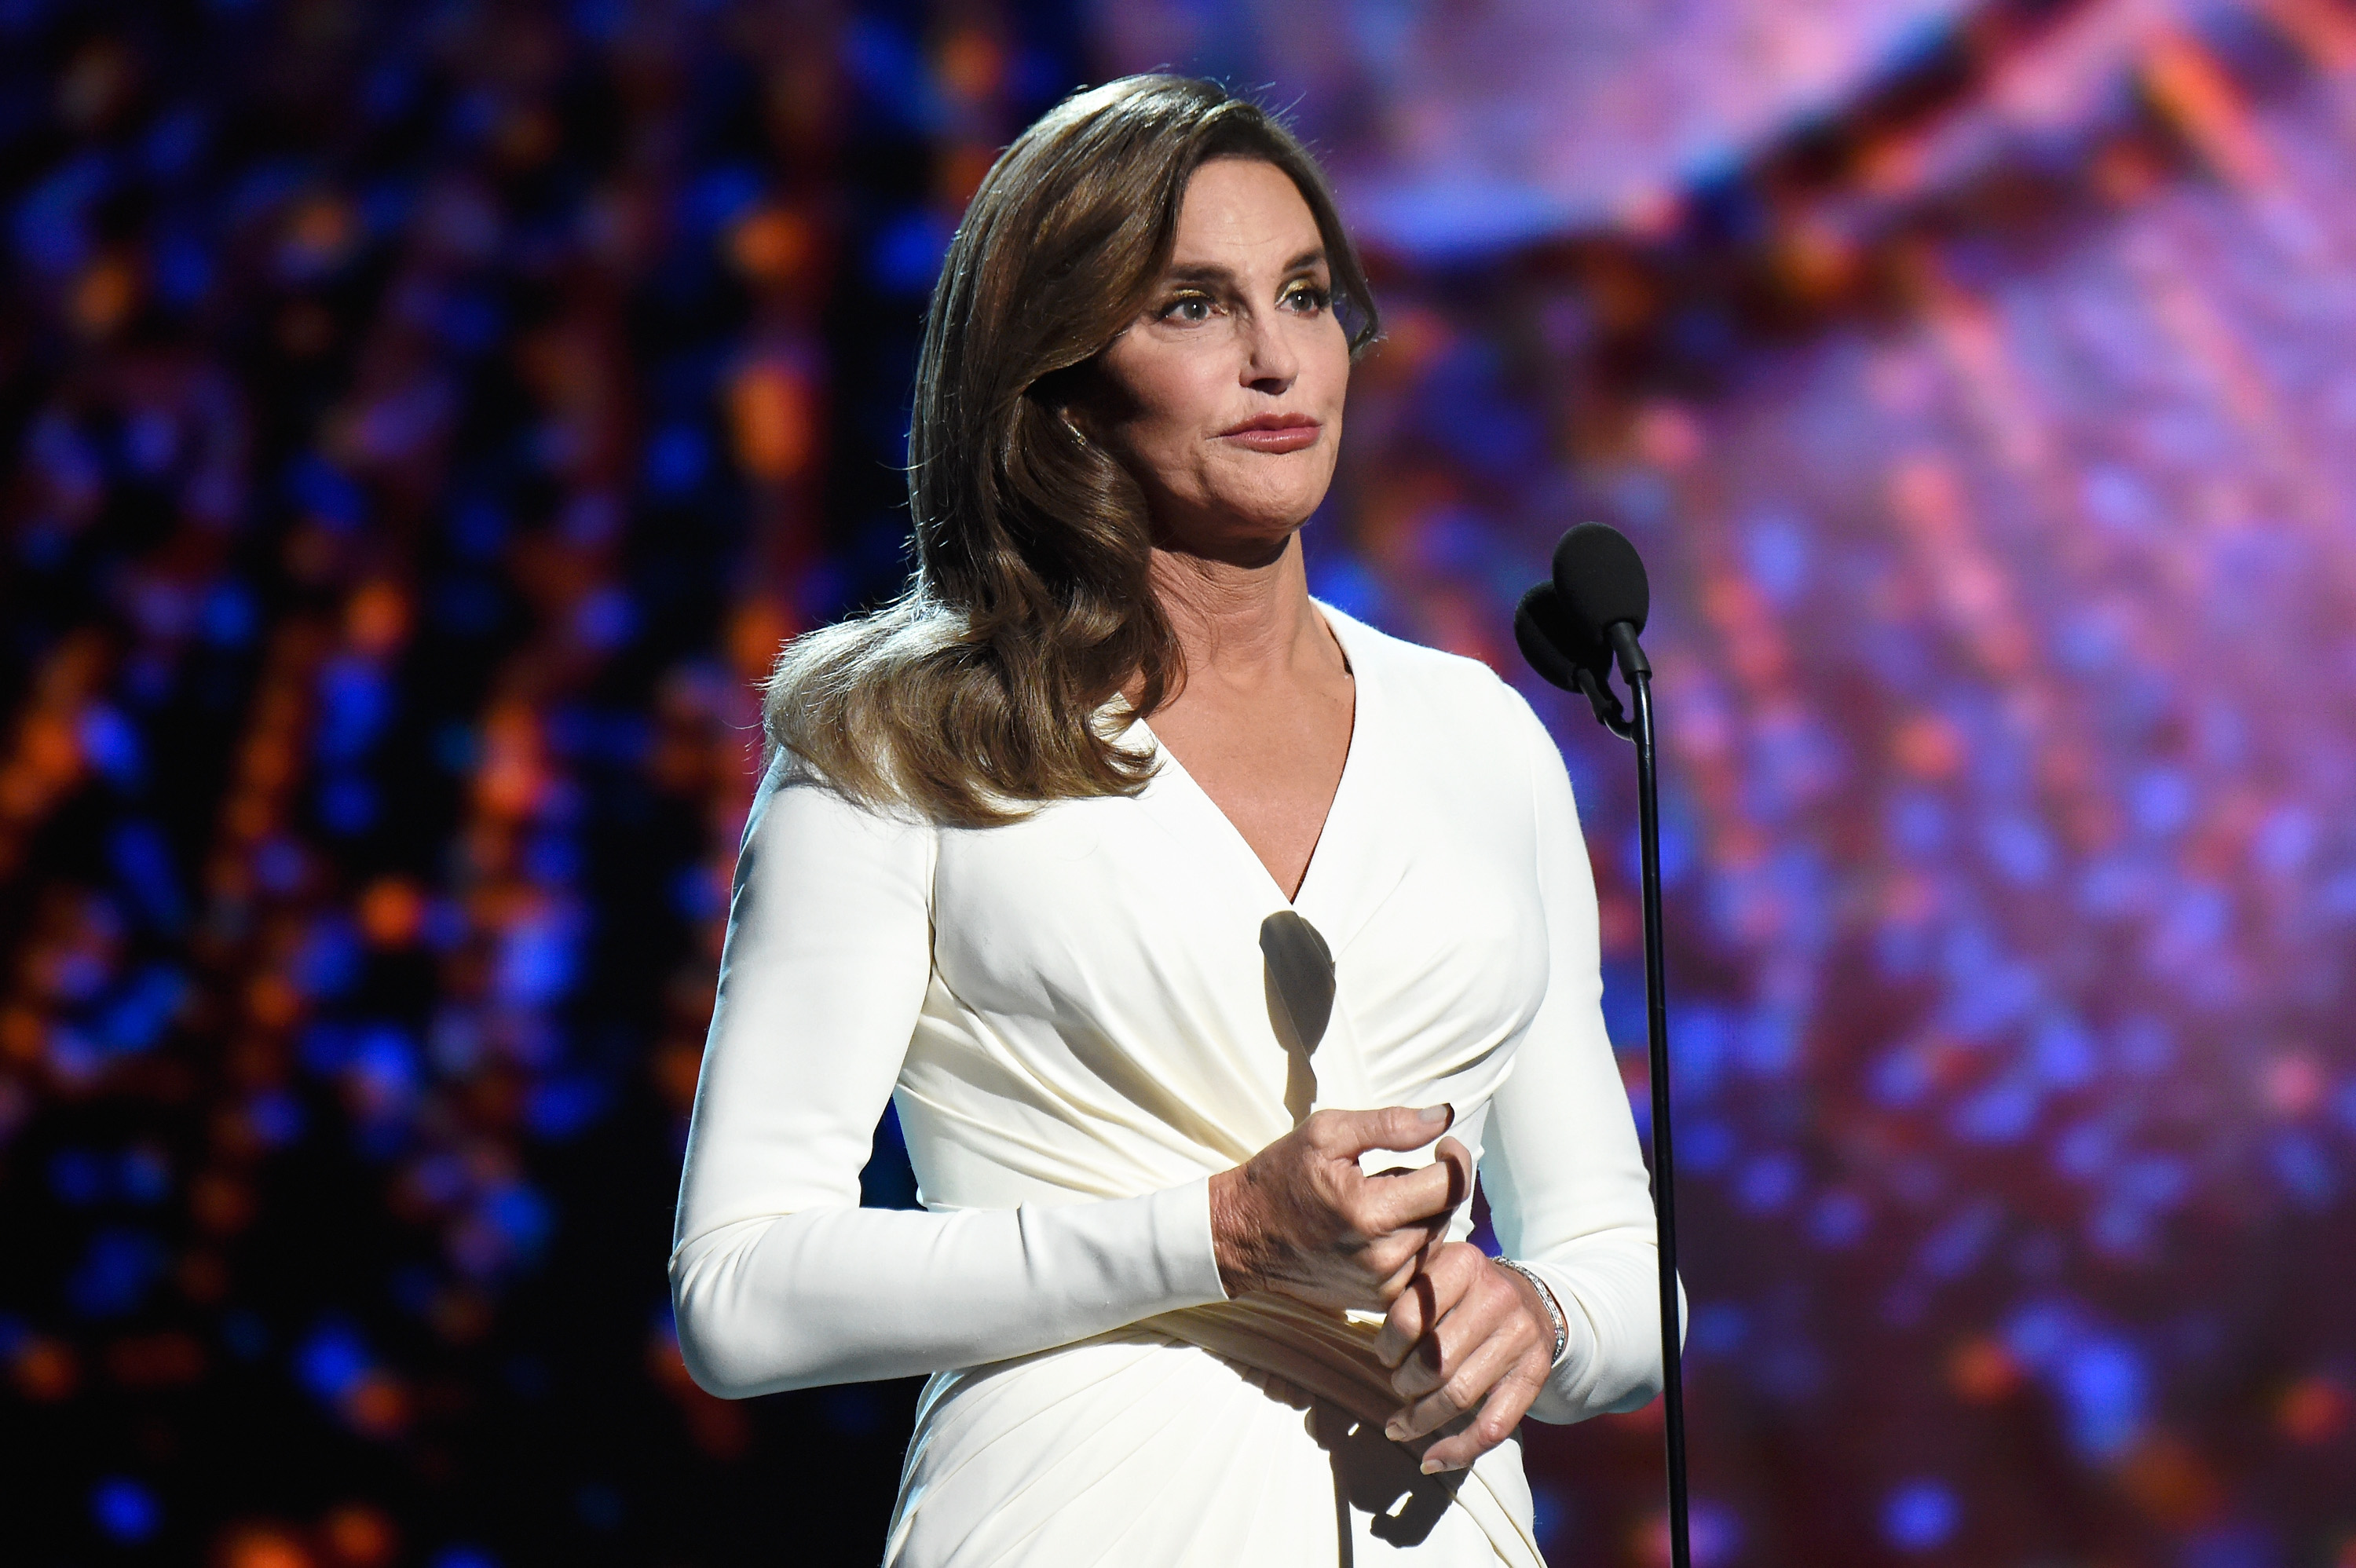 Caitlyn Jenner To Pose Completely N@ked With Her Olympic